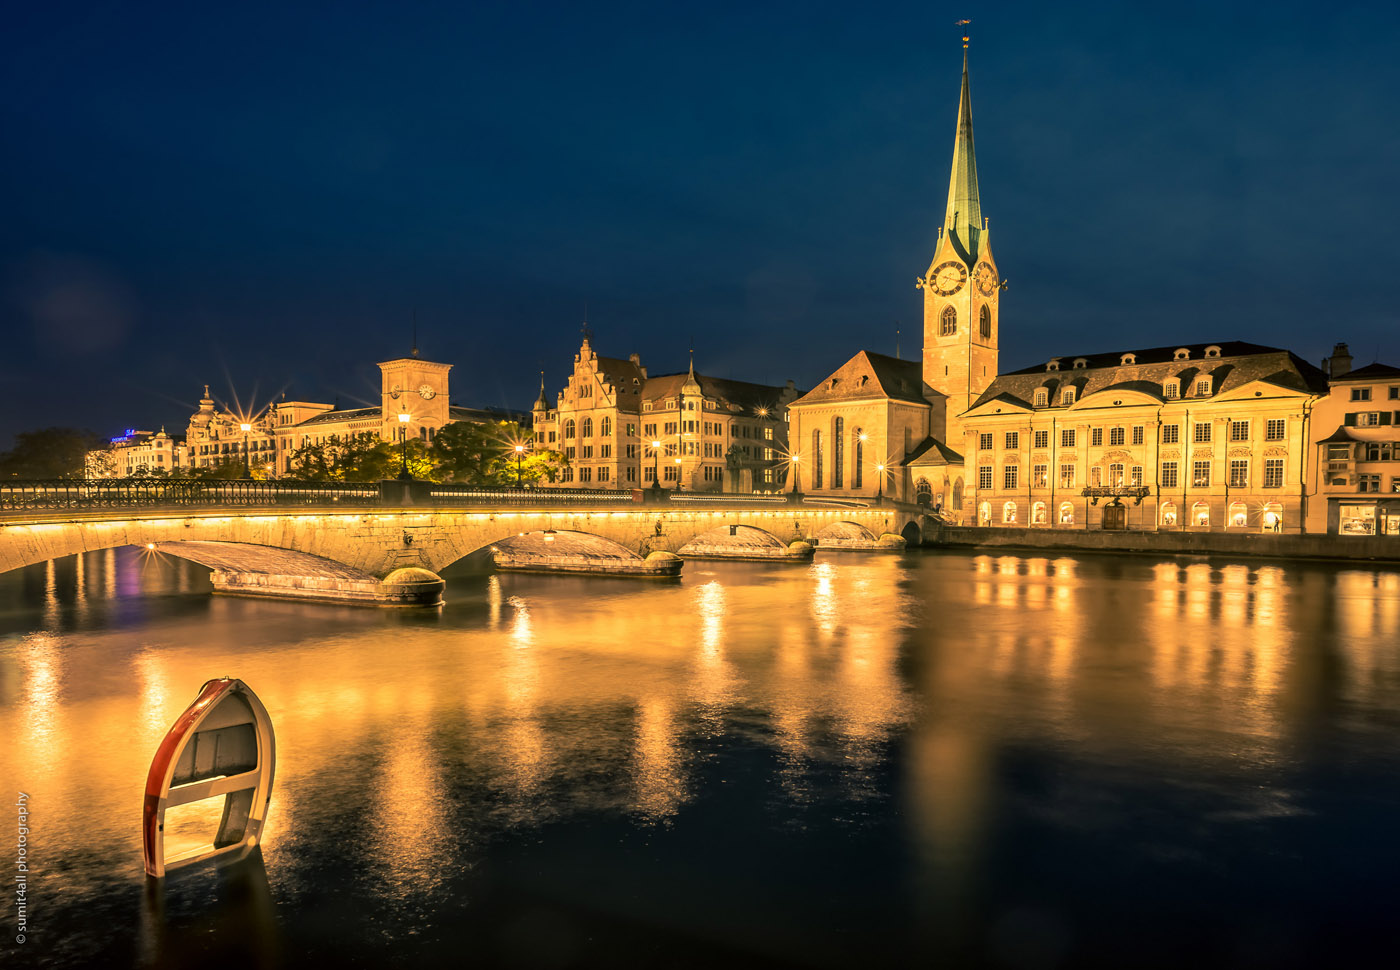 Glittering lights and still waters in the city of Zurich after nightfall.